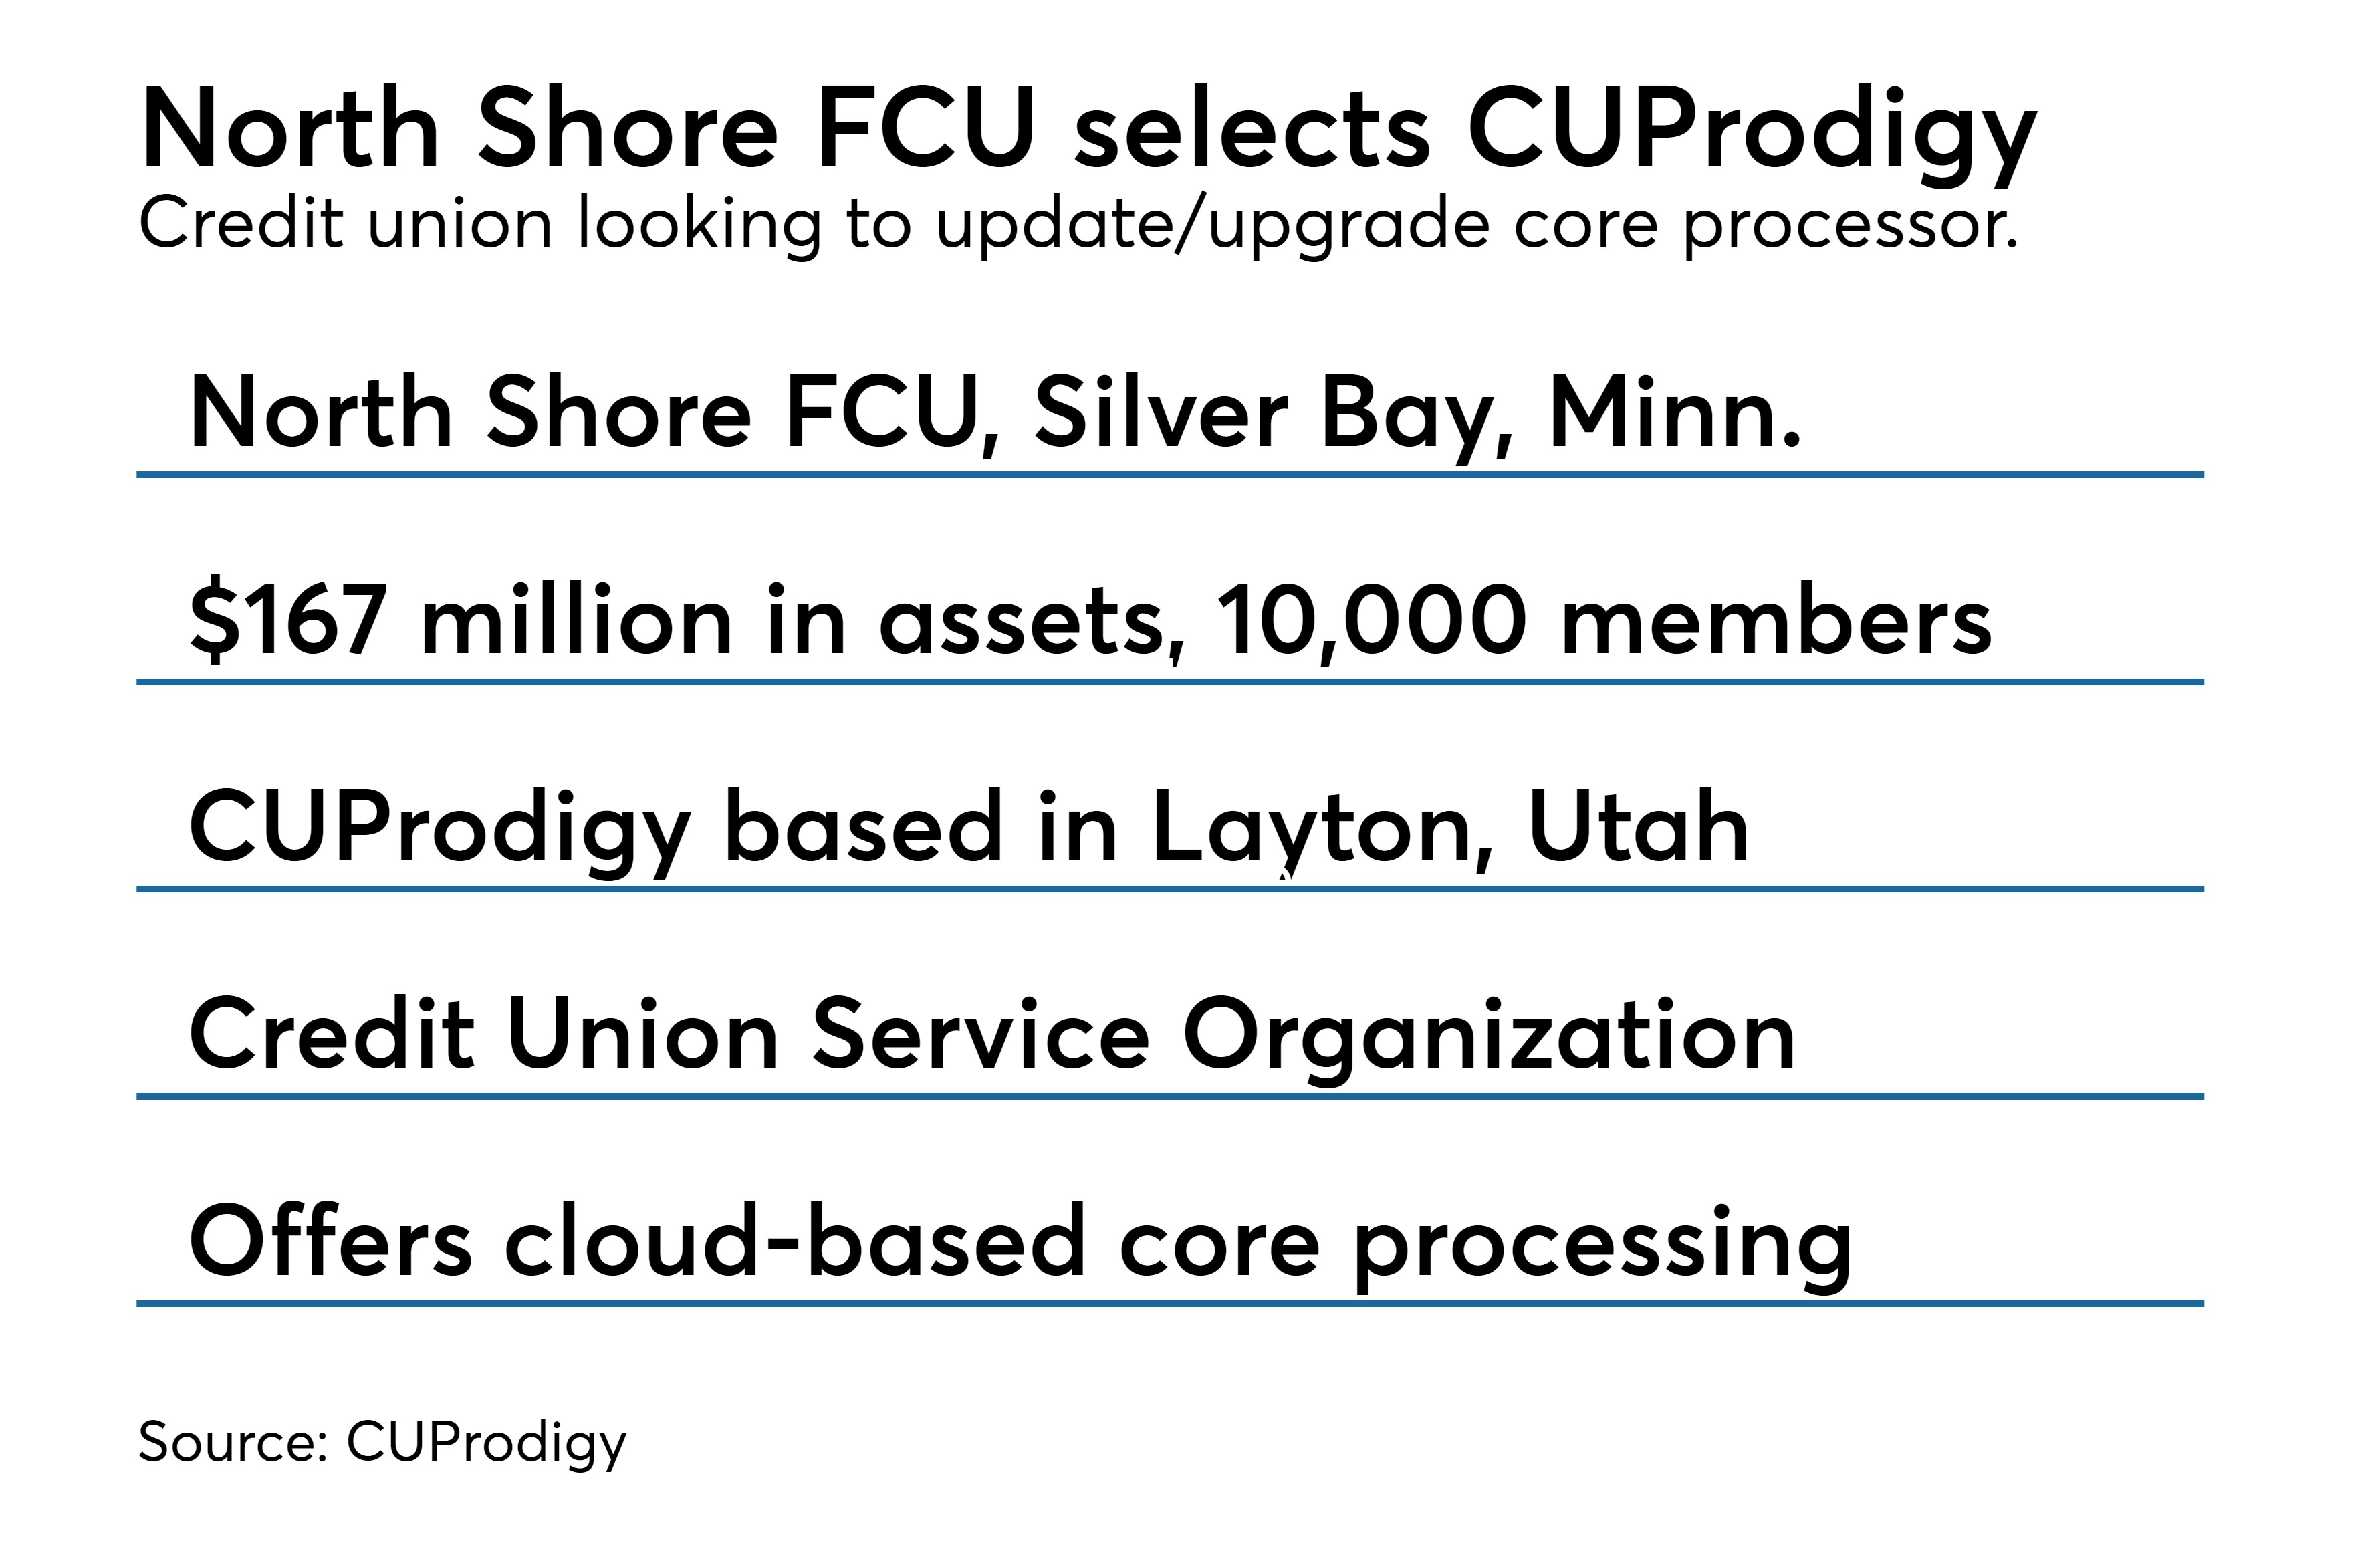 https://assets.sourcemedia.com/c6/1e/47d33bee47e49855fdc48afb0d56/north-shore-selects-cuprodigy.jpeg